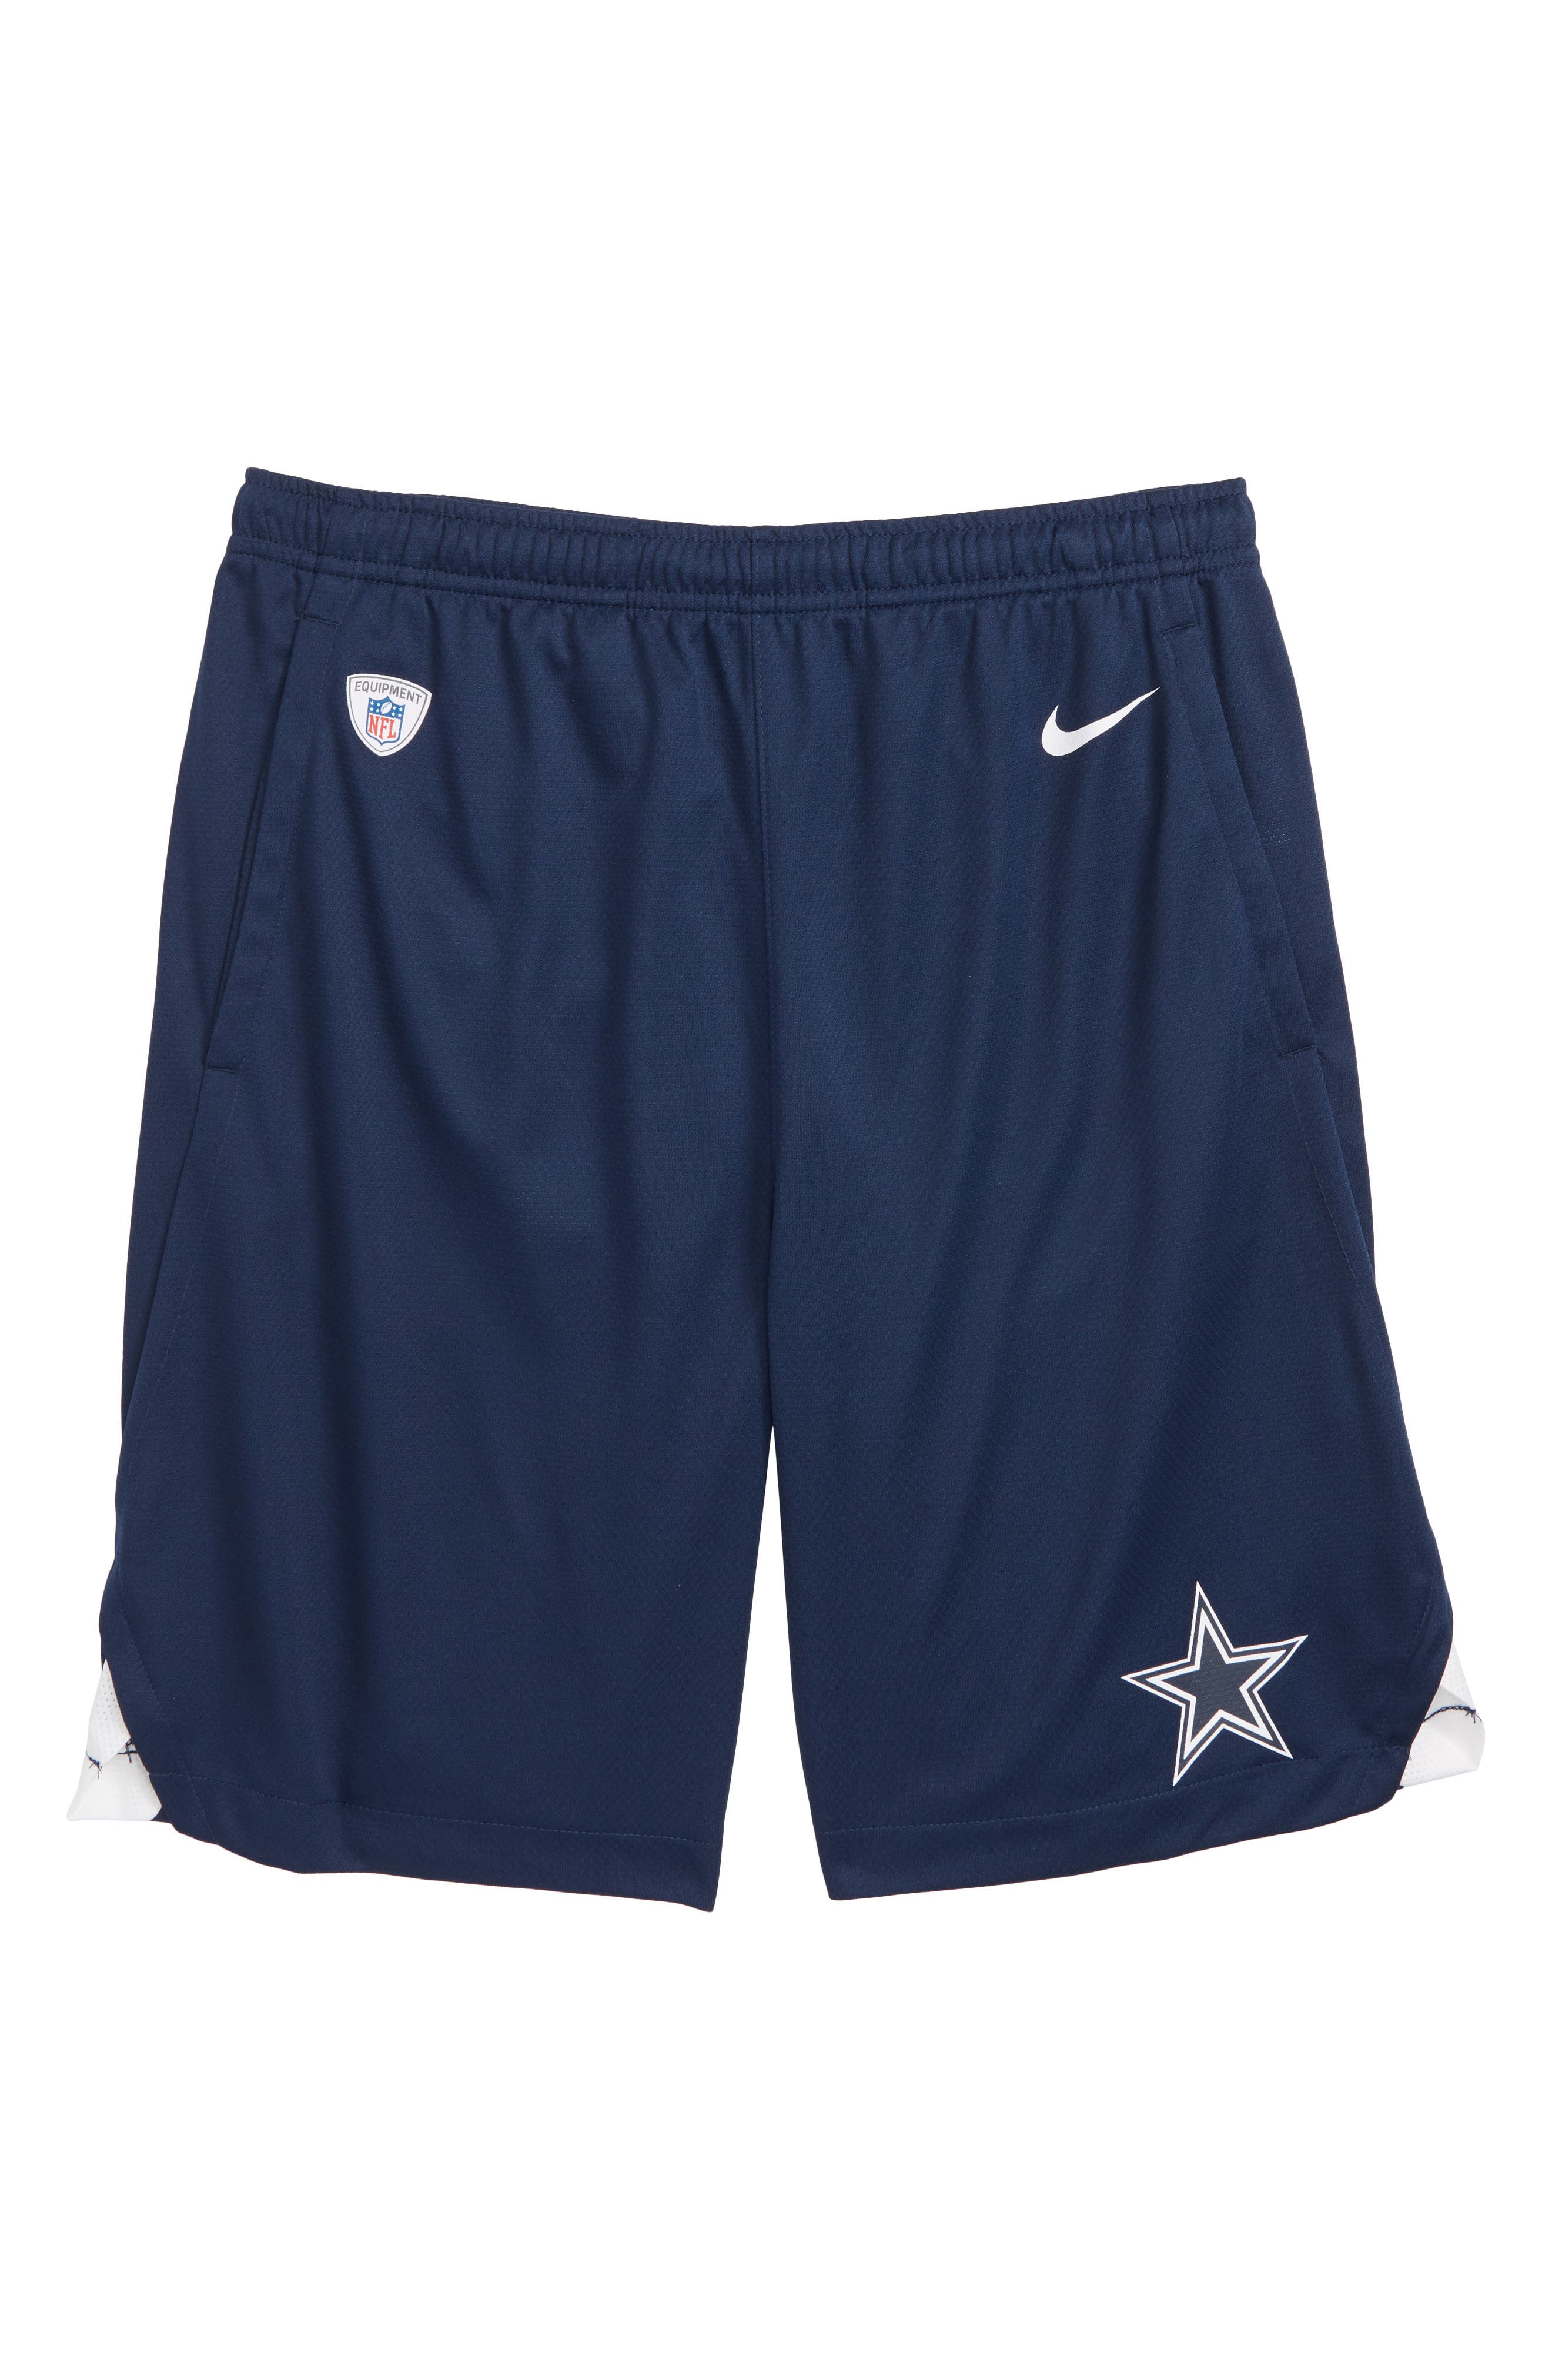 Nike NFL Dallas Cowboys Dry Knit Shorts,                             Main thumbnail 1, color,                             NAVY